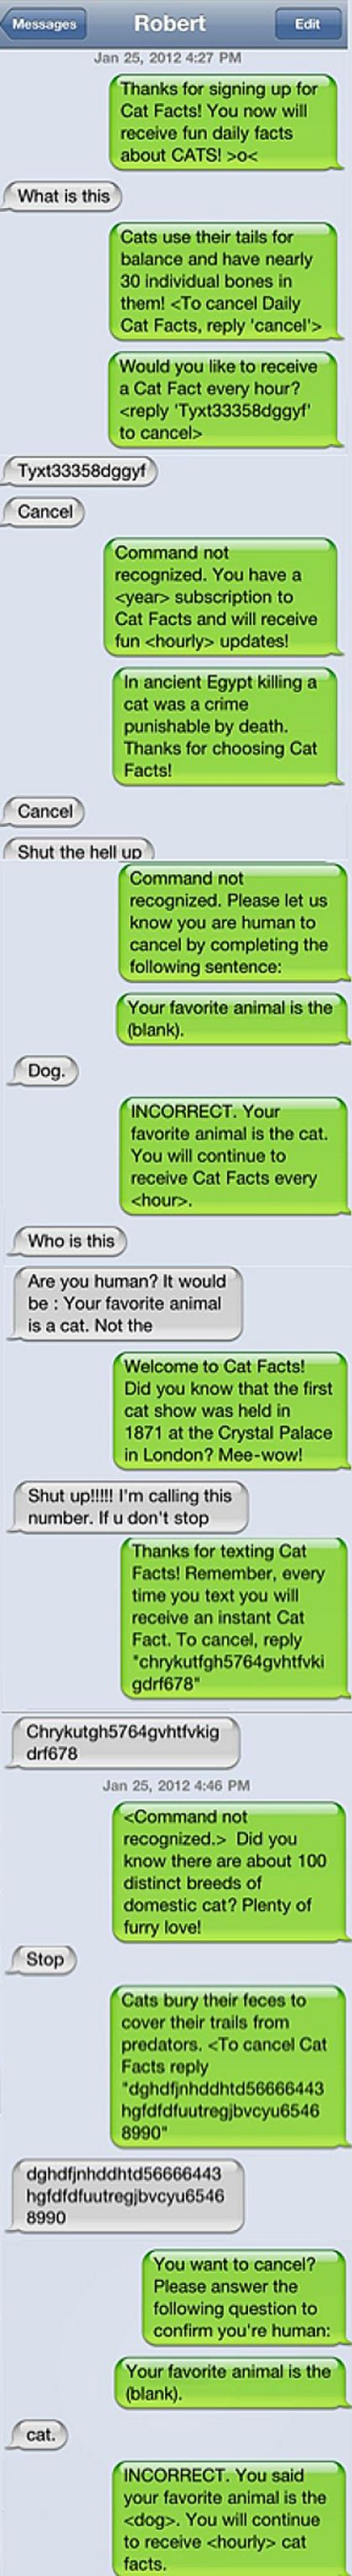 I'm definitely doing this to one of my cat-hating friends!